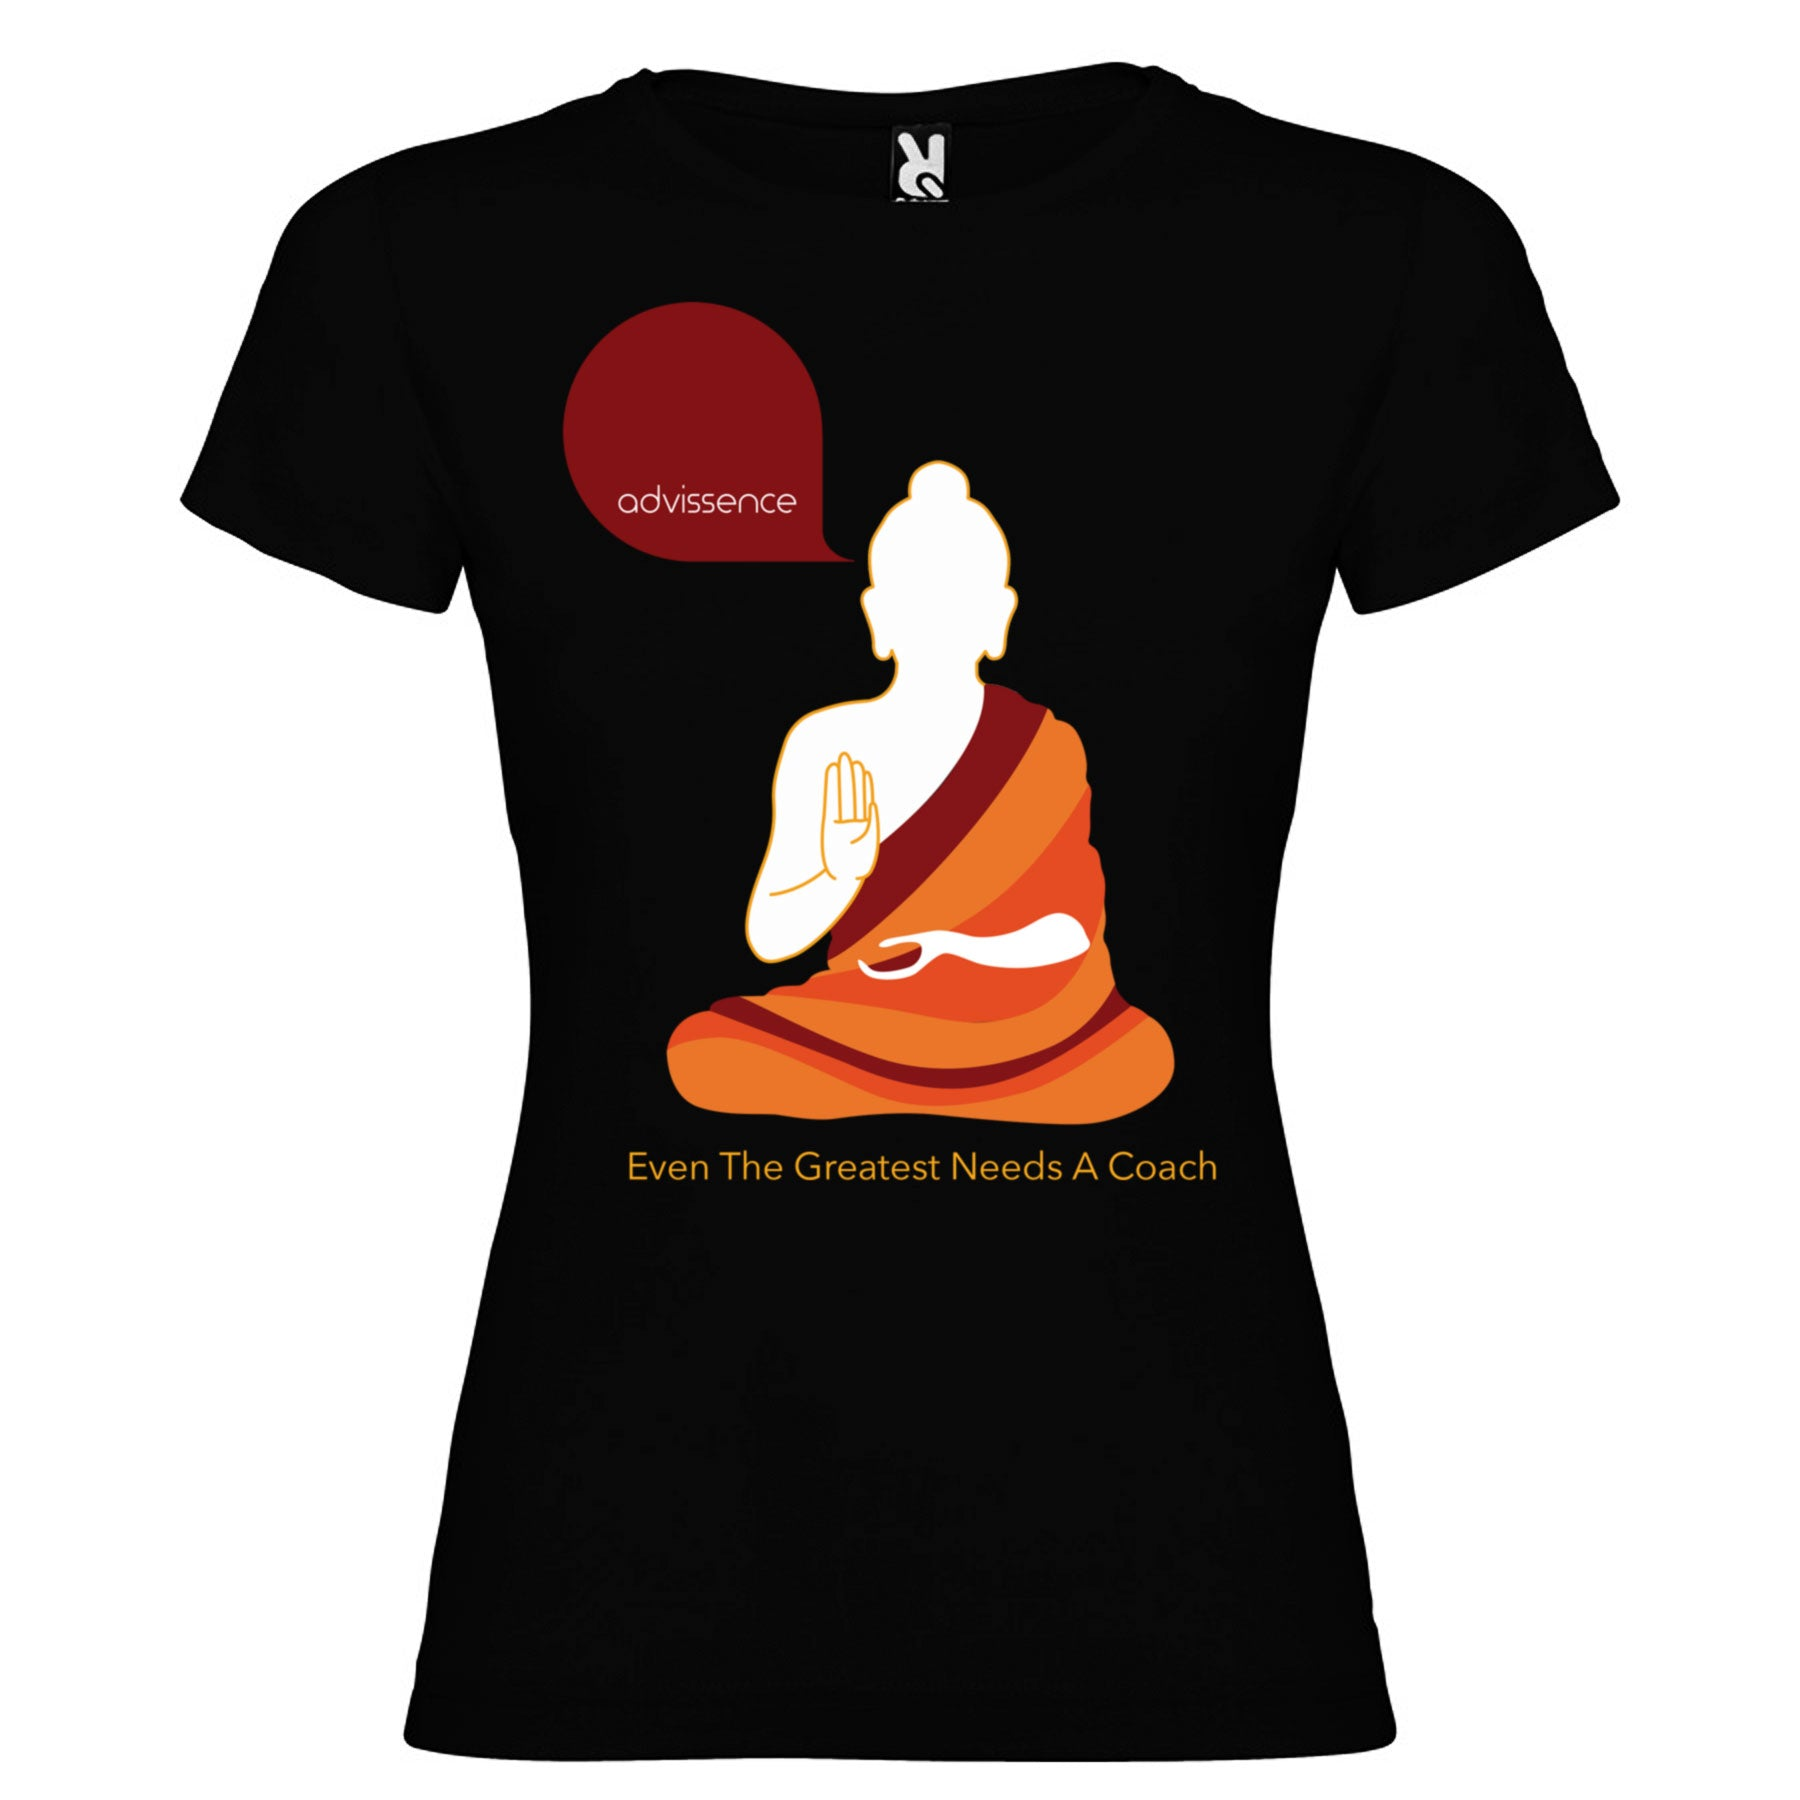 Advissence - Camiseta Greatest Chica - Merchanfy Imprime tus camisetas